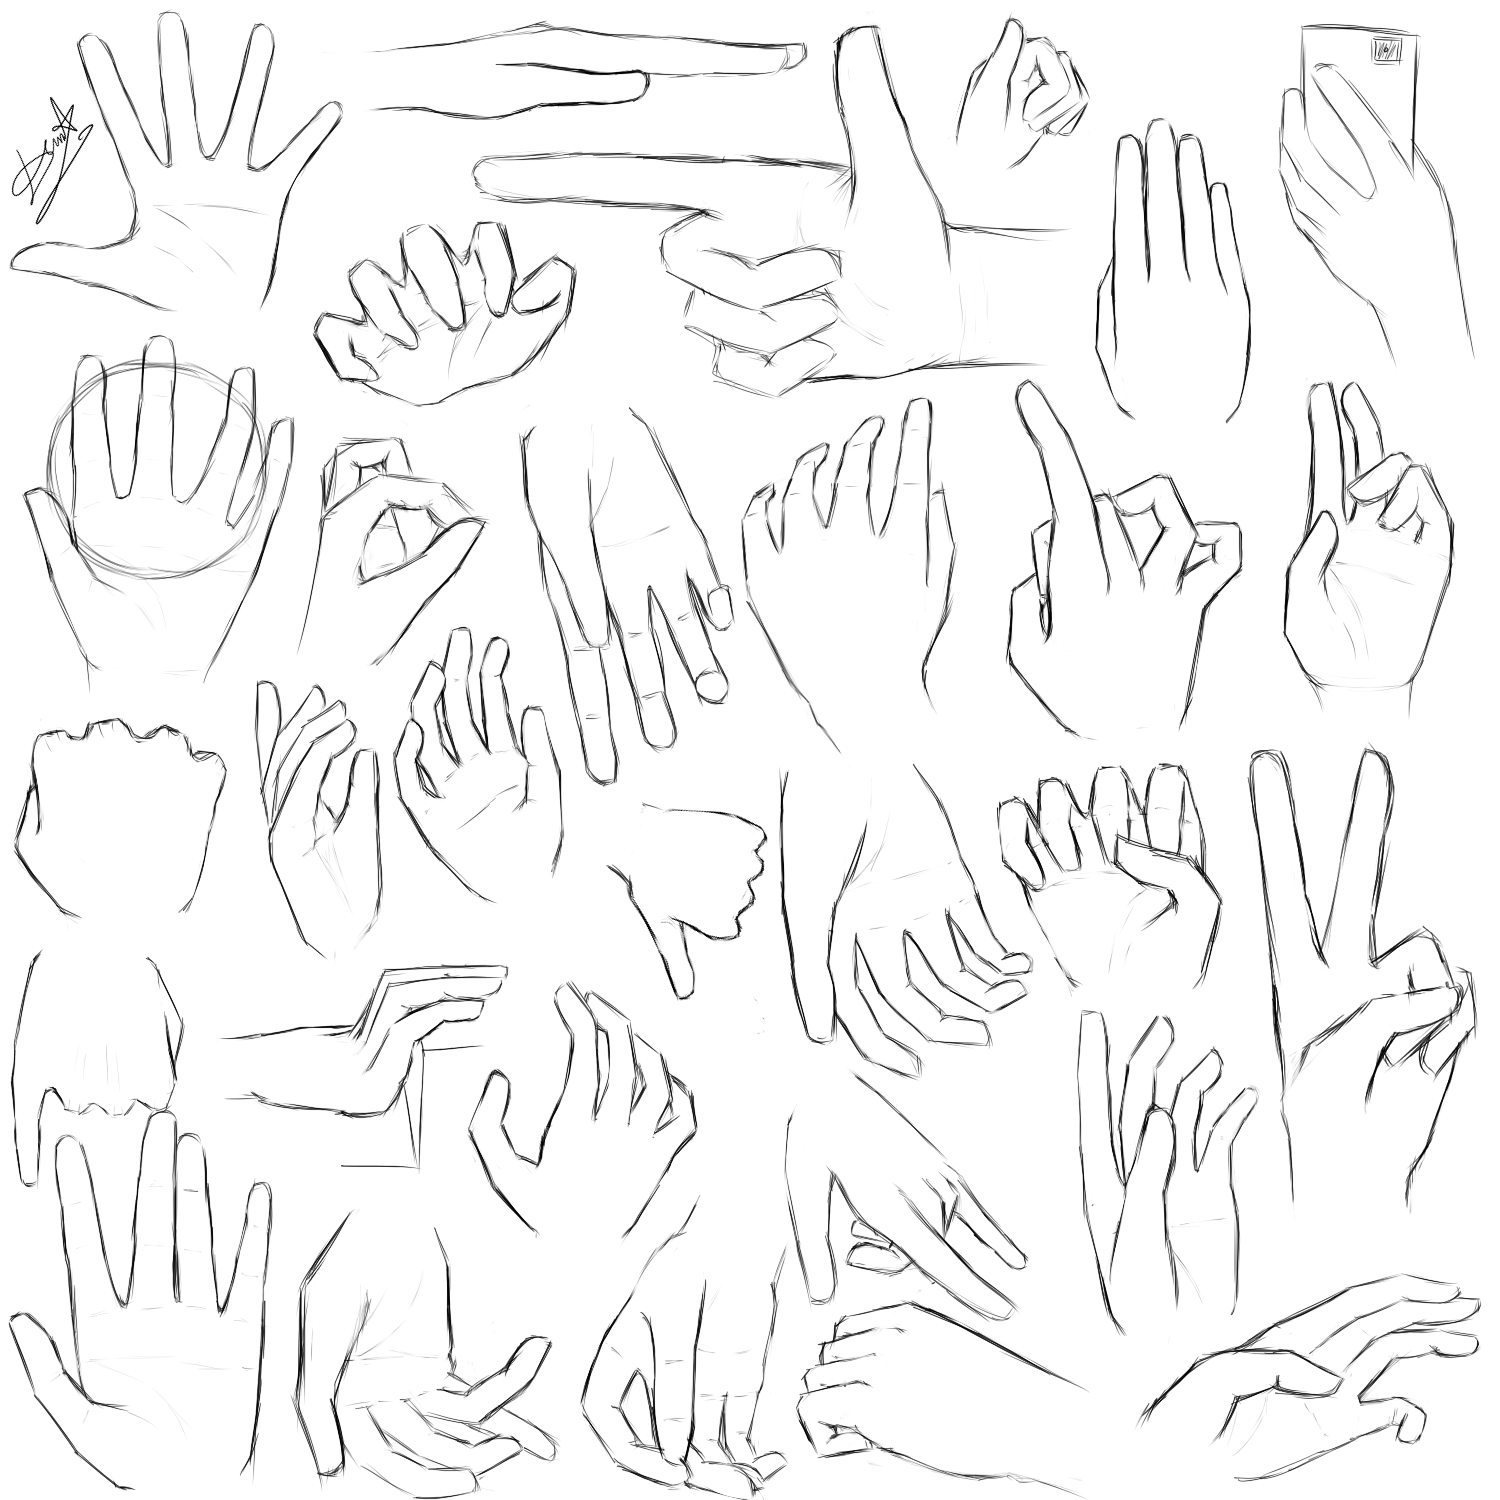 Left Hands Drawing Left Hand Holding Something Draw Anime Step By Step How